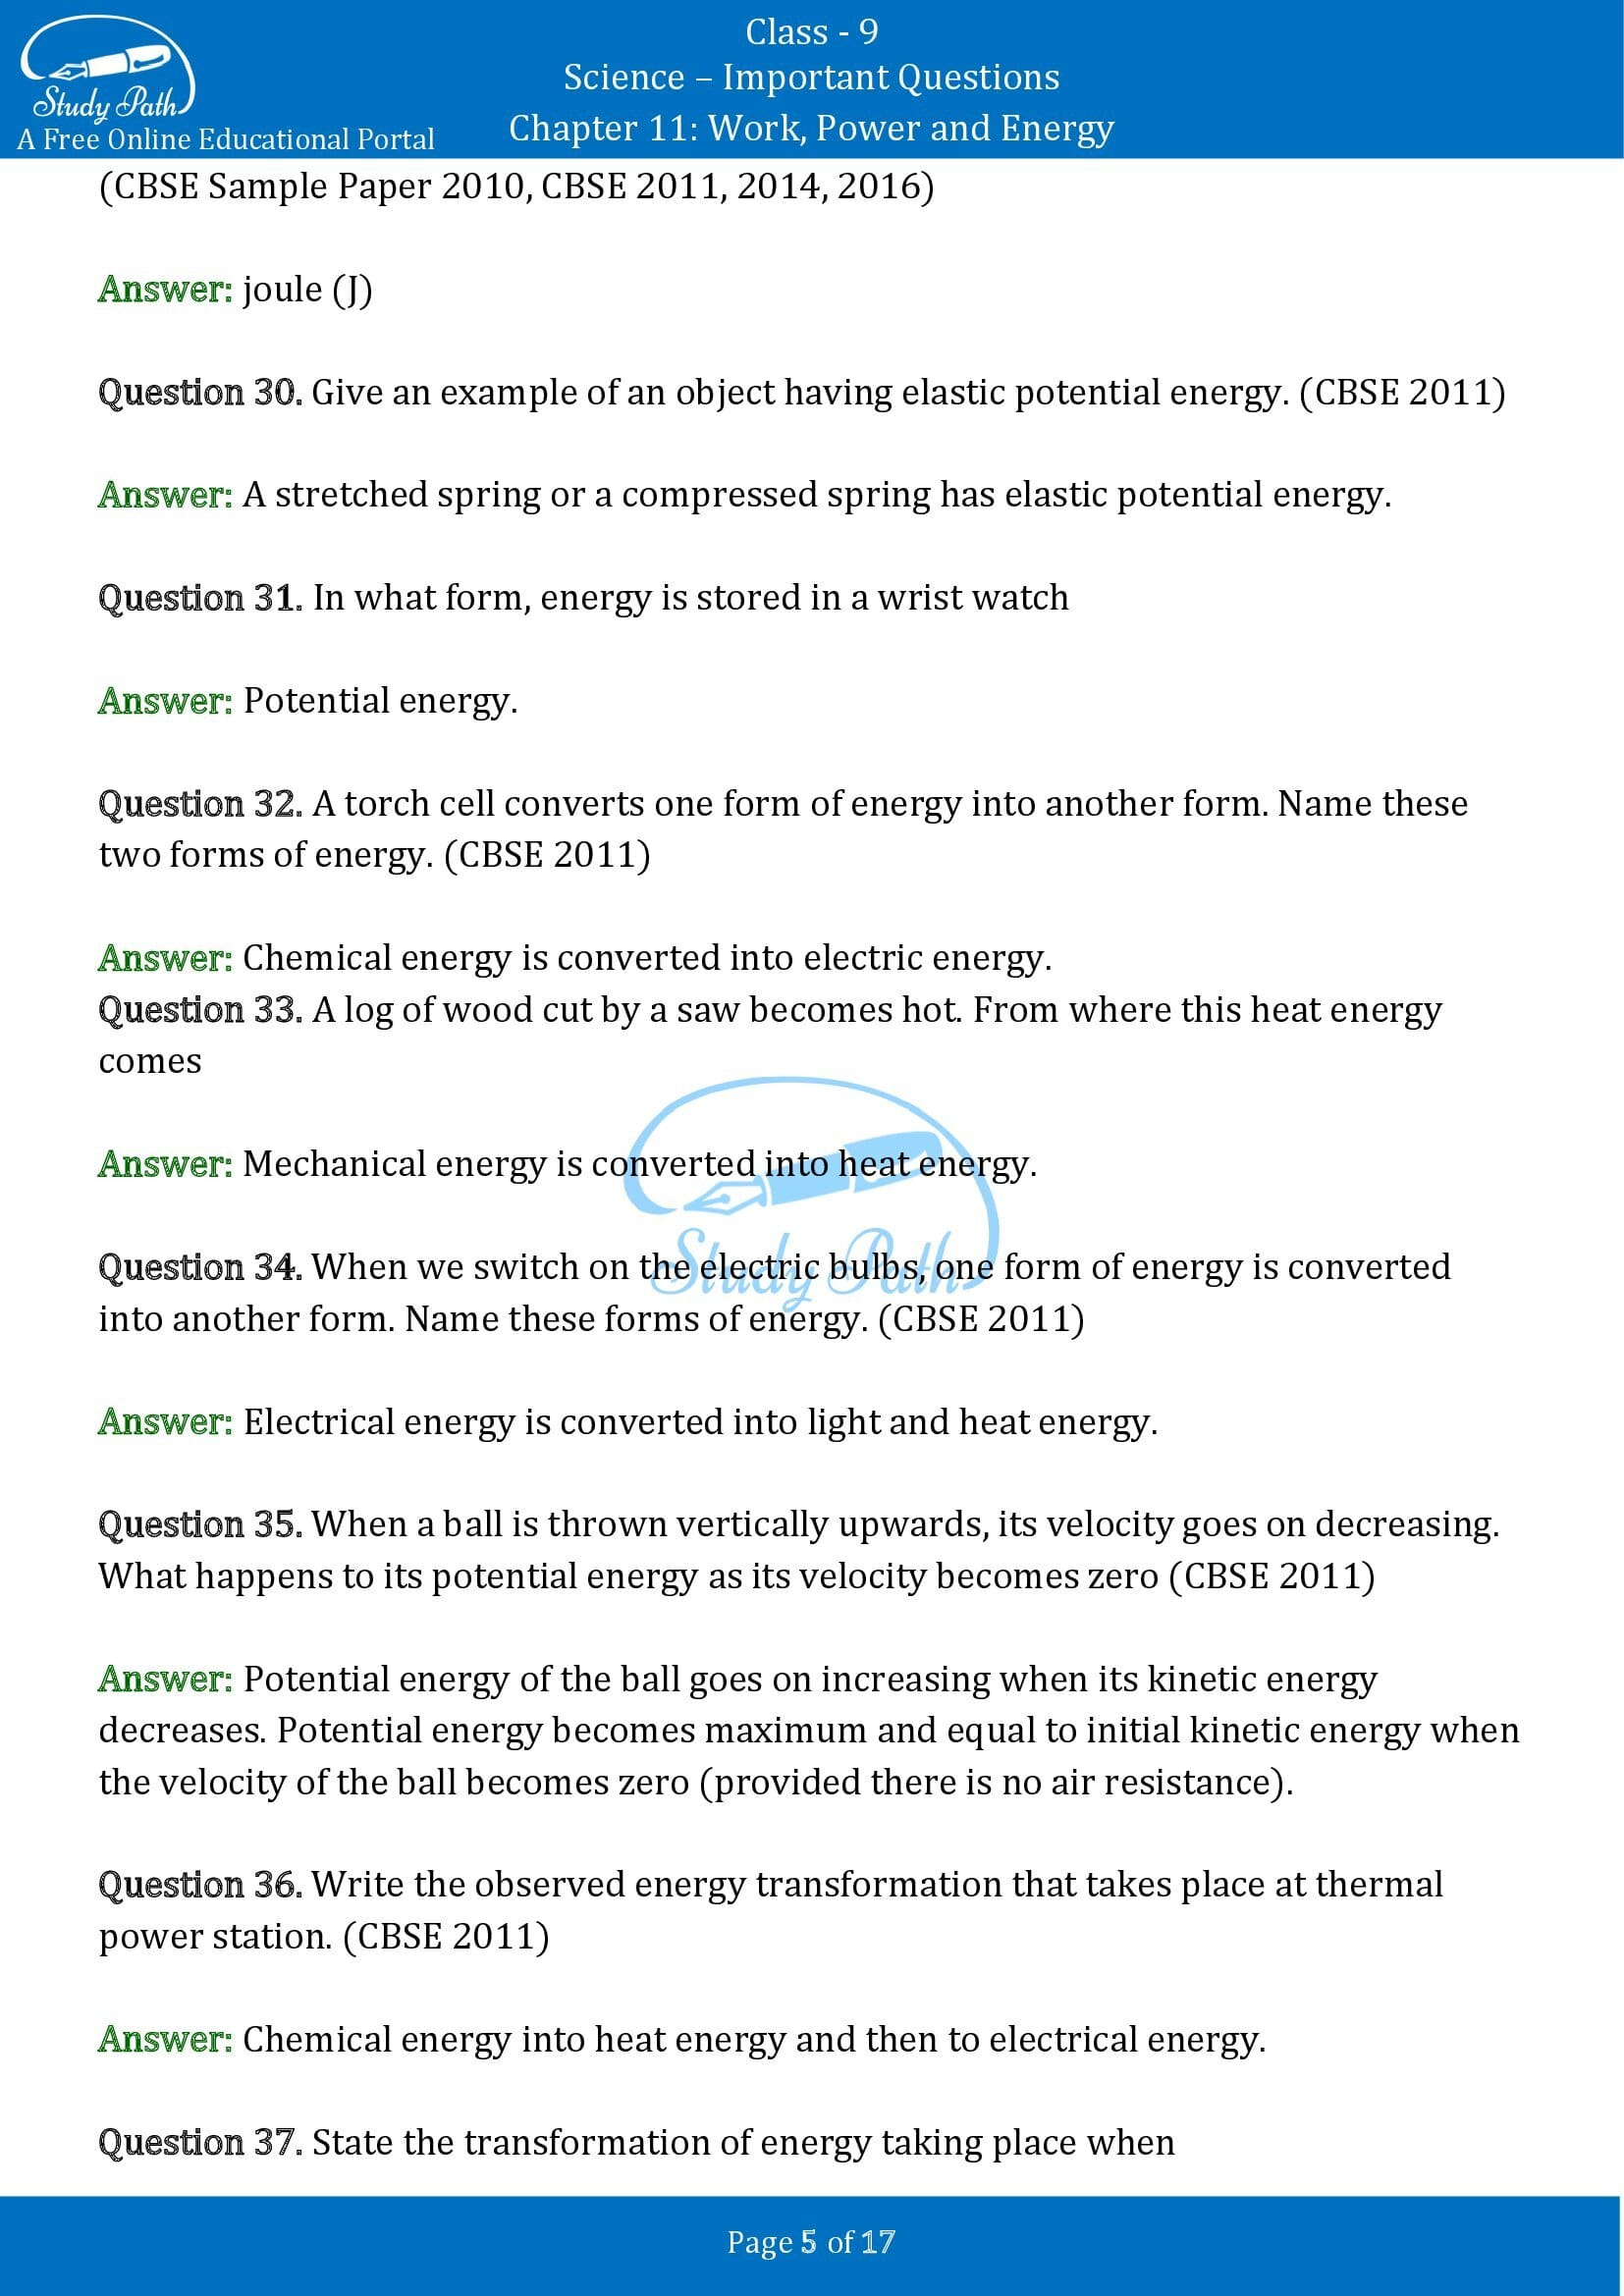 Important Questions for Class 9 Science Chapter 11 Work Power and Energy 00005